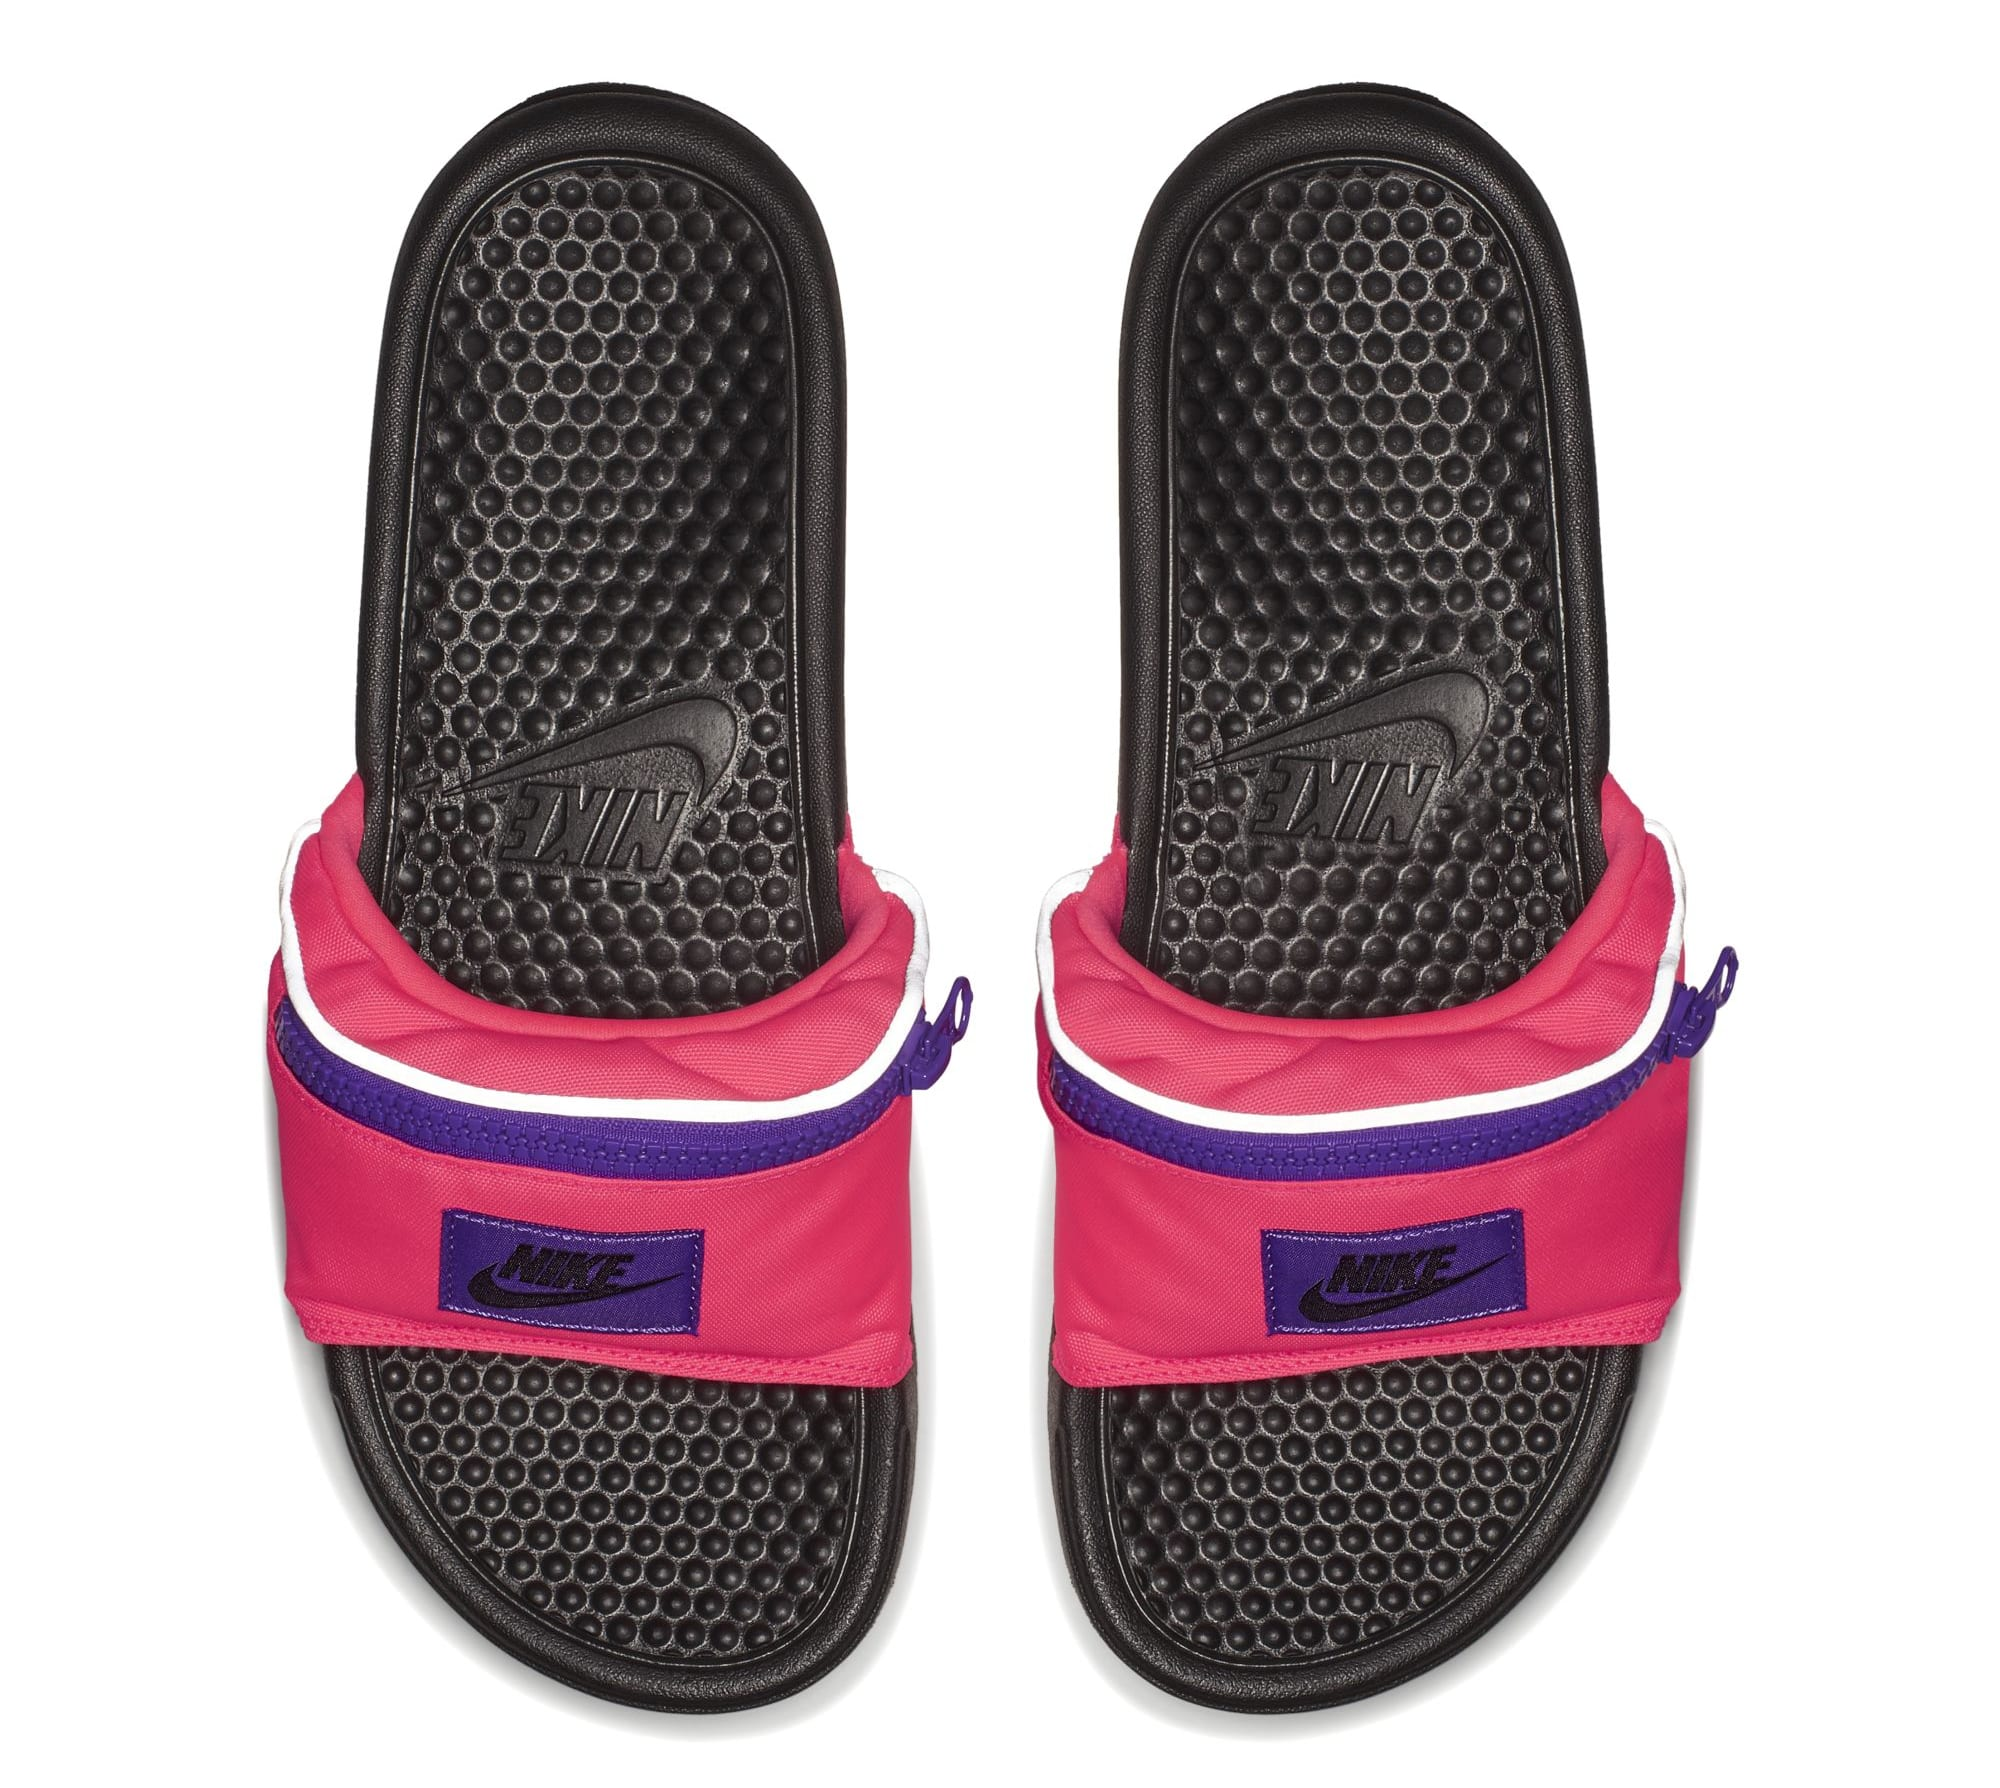 Nike s Benassi Slides Might Be Your Pool Party Necessity 8259b9aee